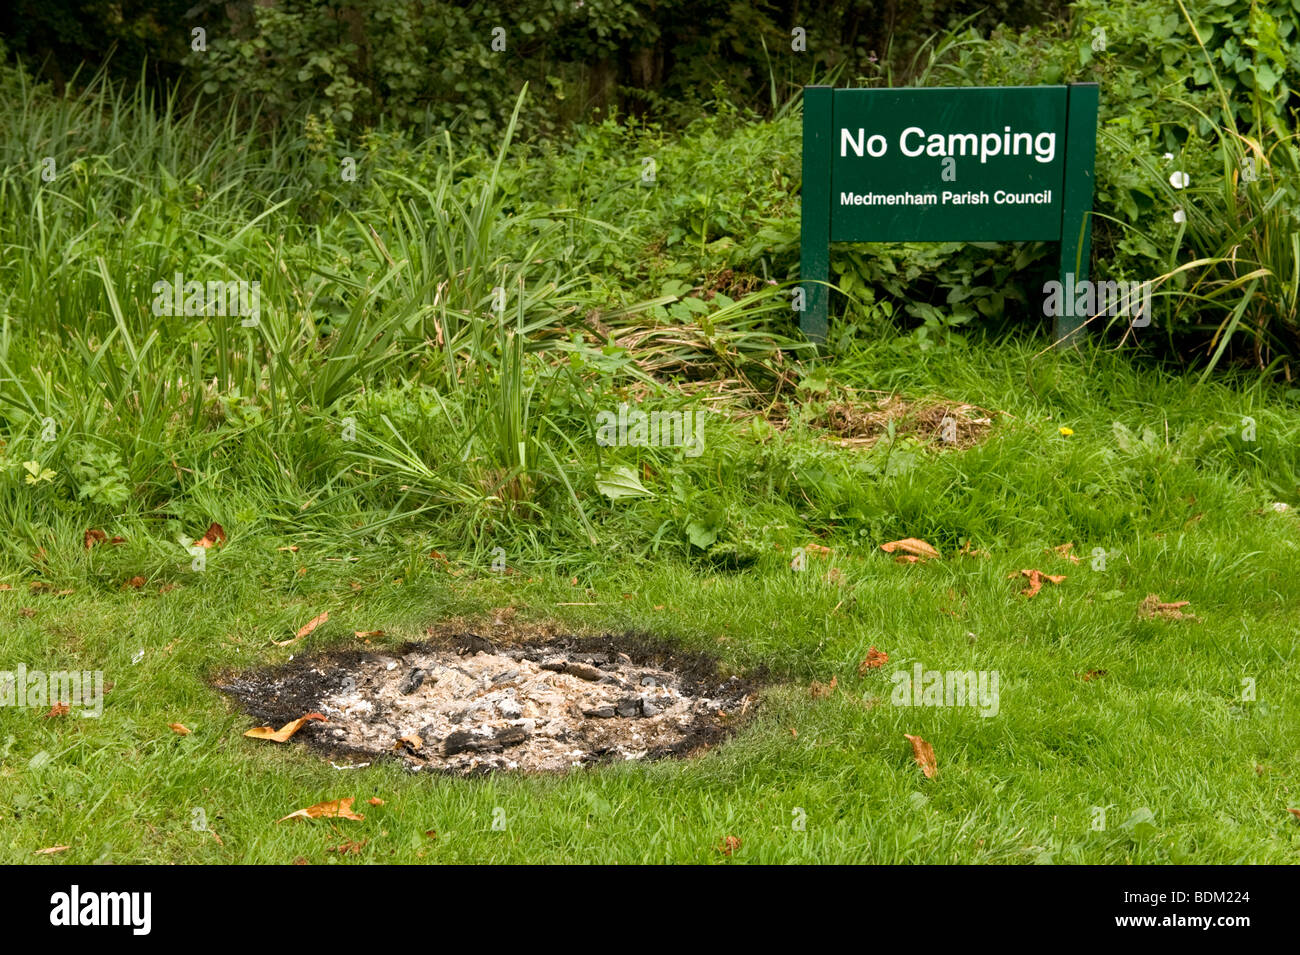 burn mark on caused by fire damage on grass in Chilterns countryside  near Hambleden, Buckinghamshire, UK - Stock Image